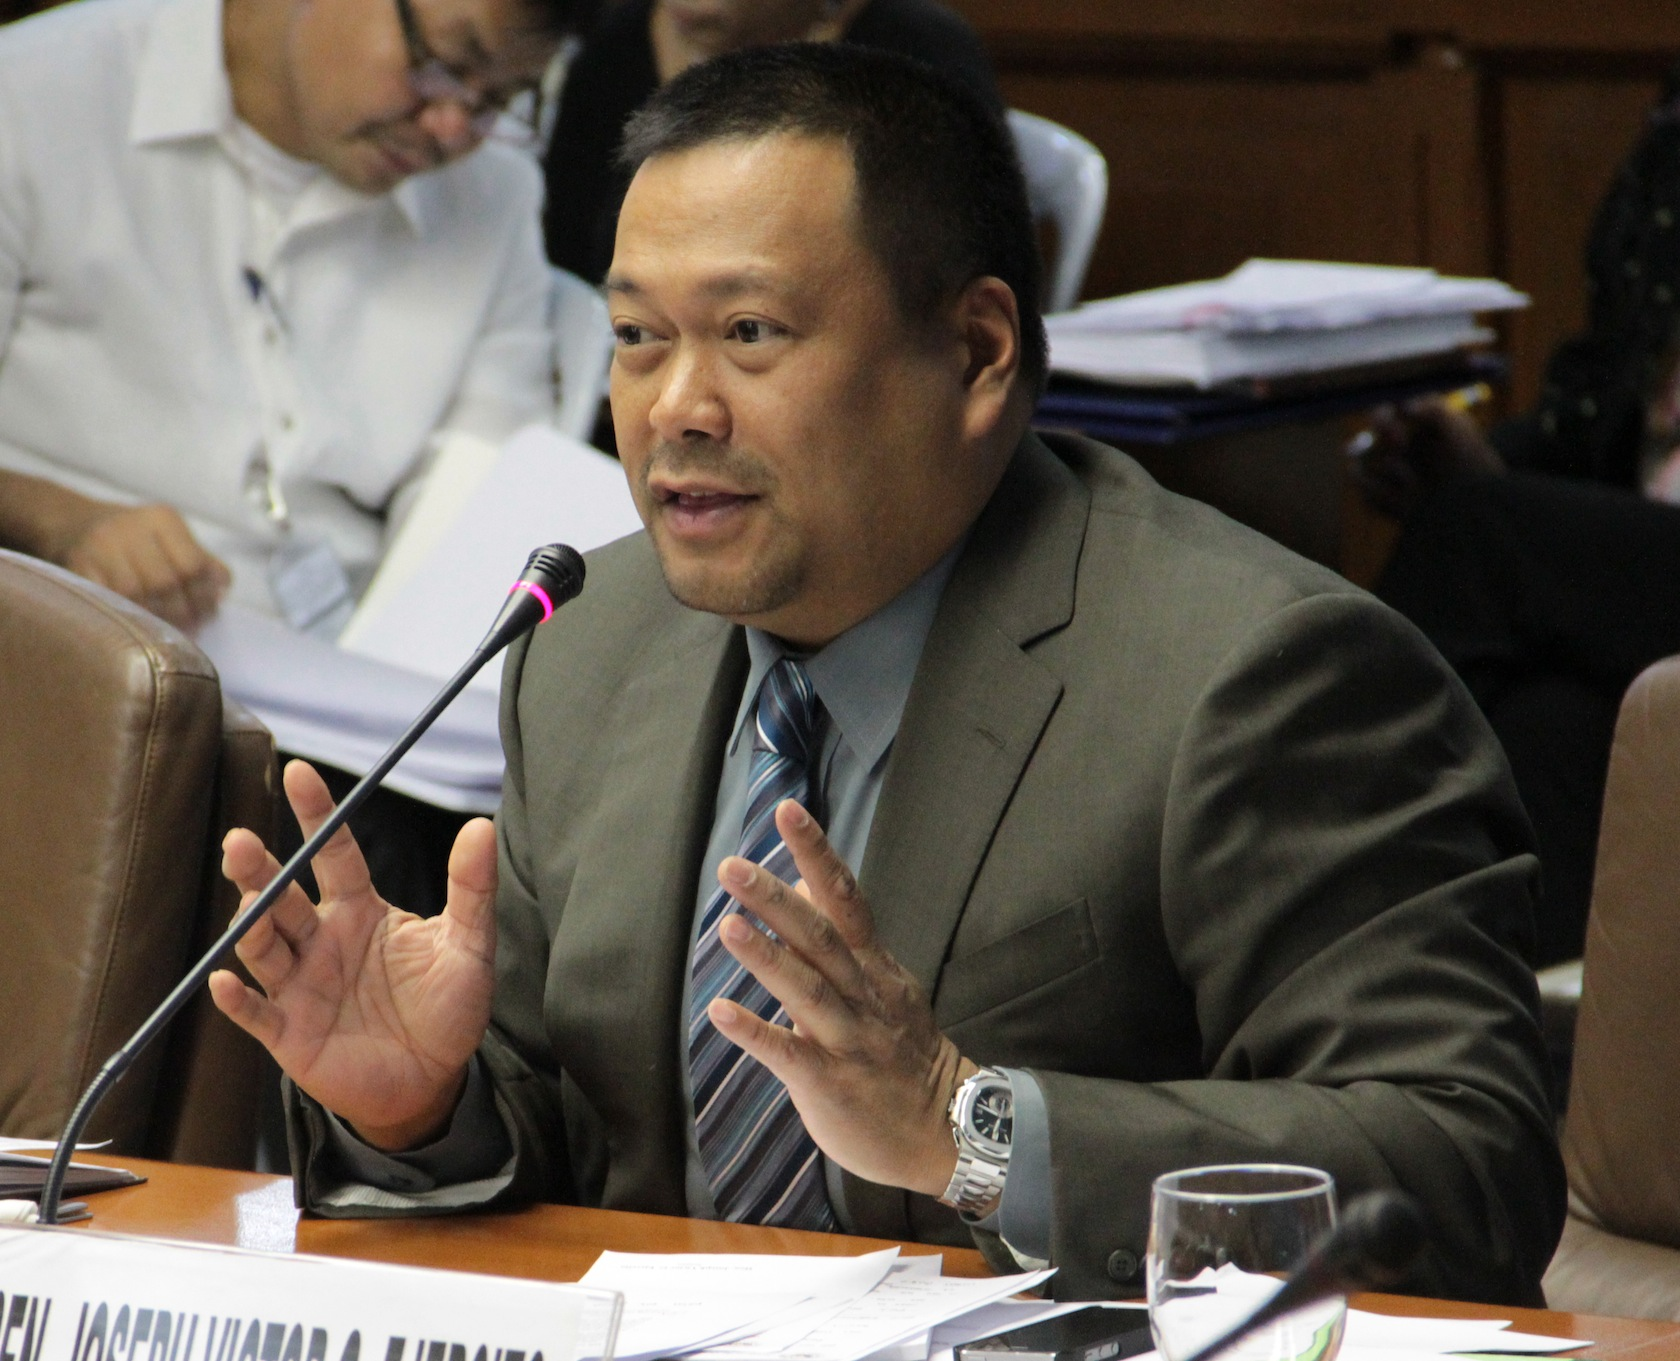 JV ASKS PNOY: APPOINT EXPERTS NOT ALLIES